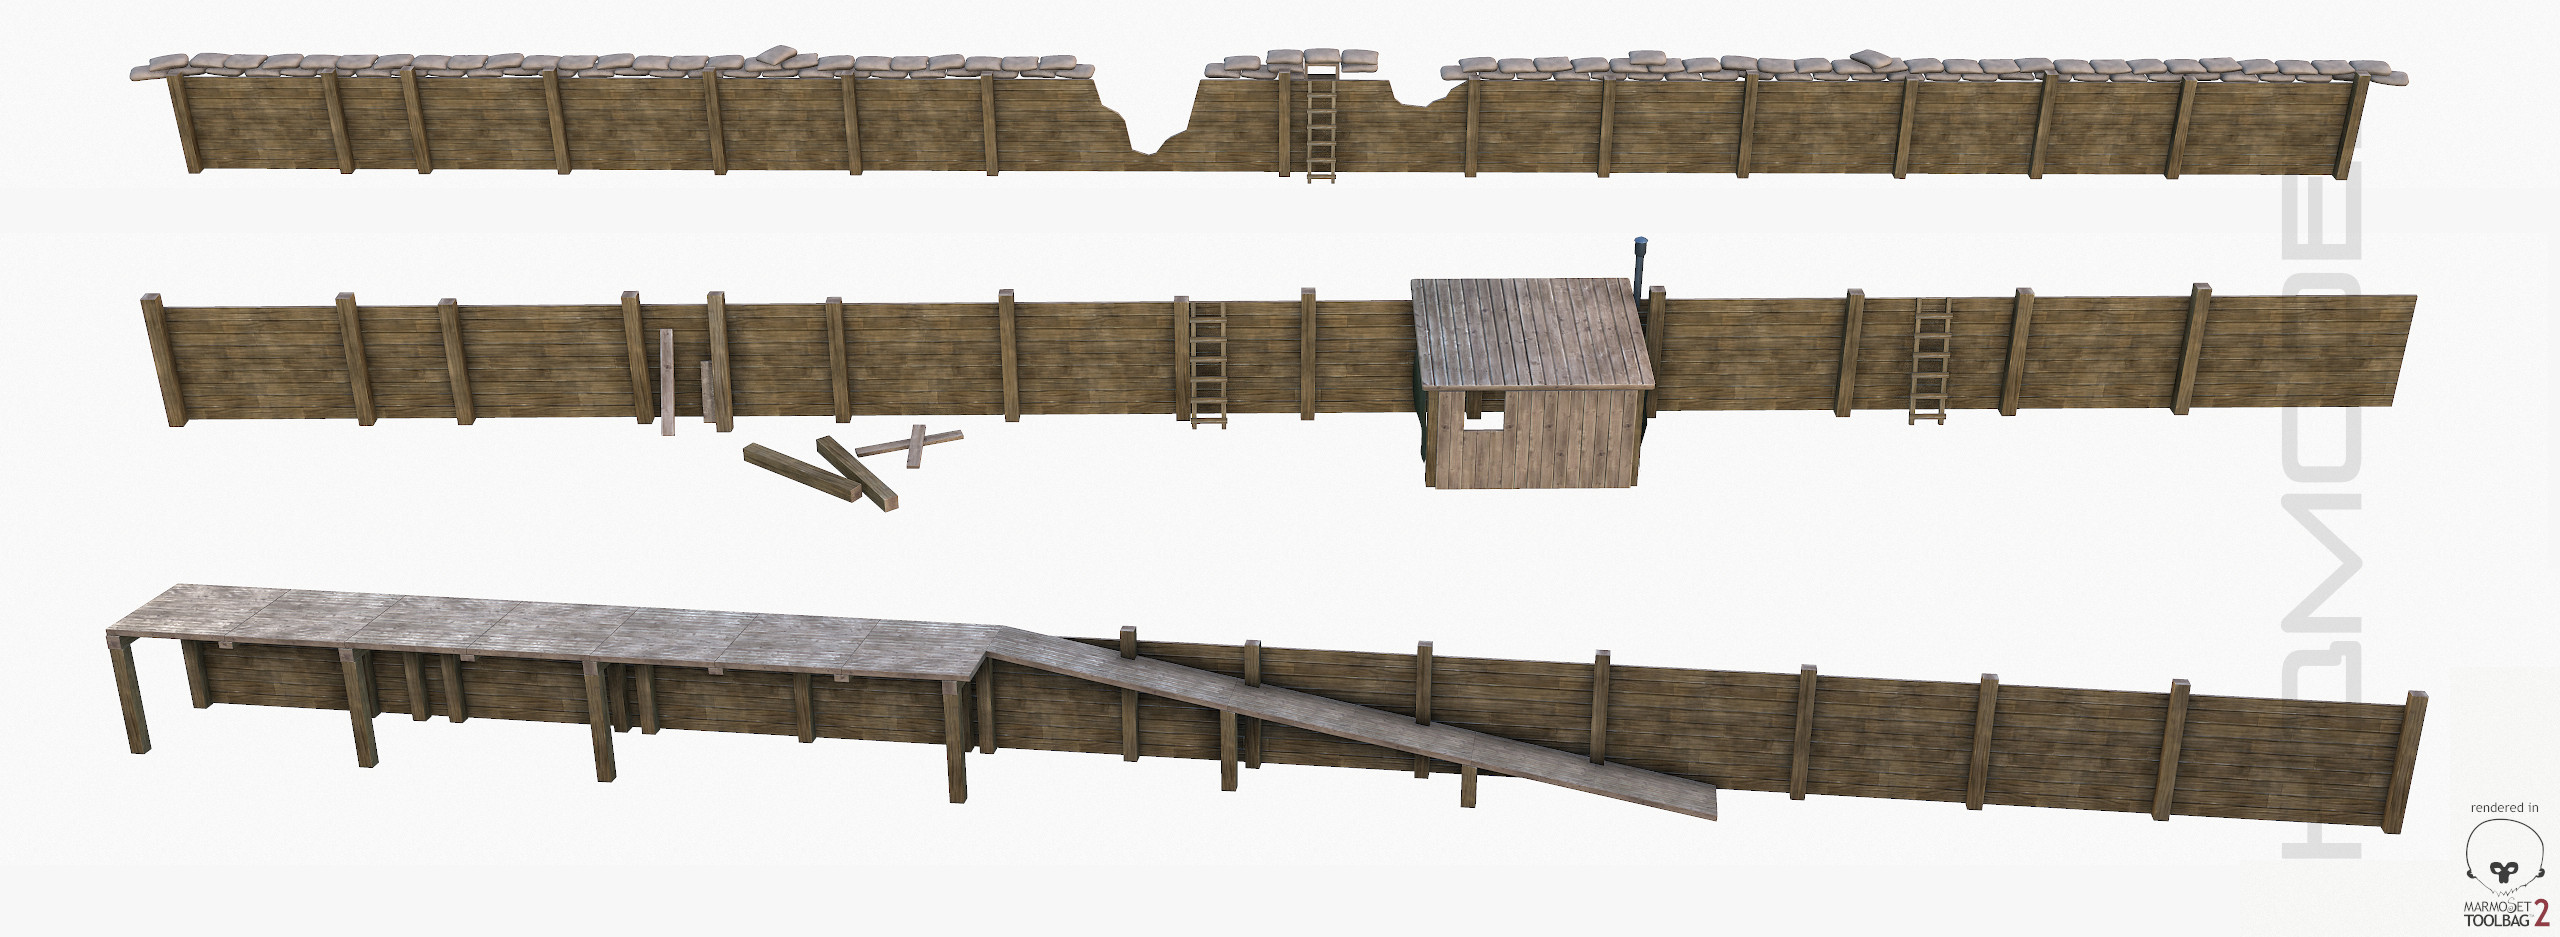 3d modular trench ready